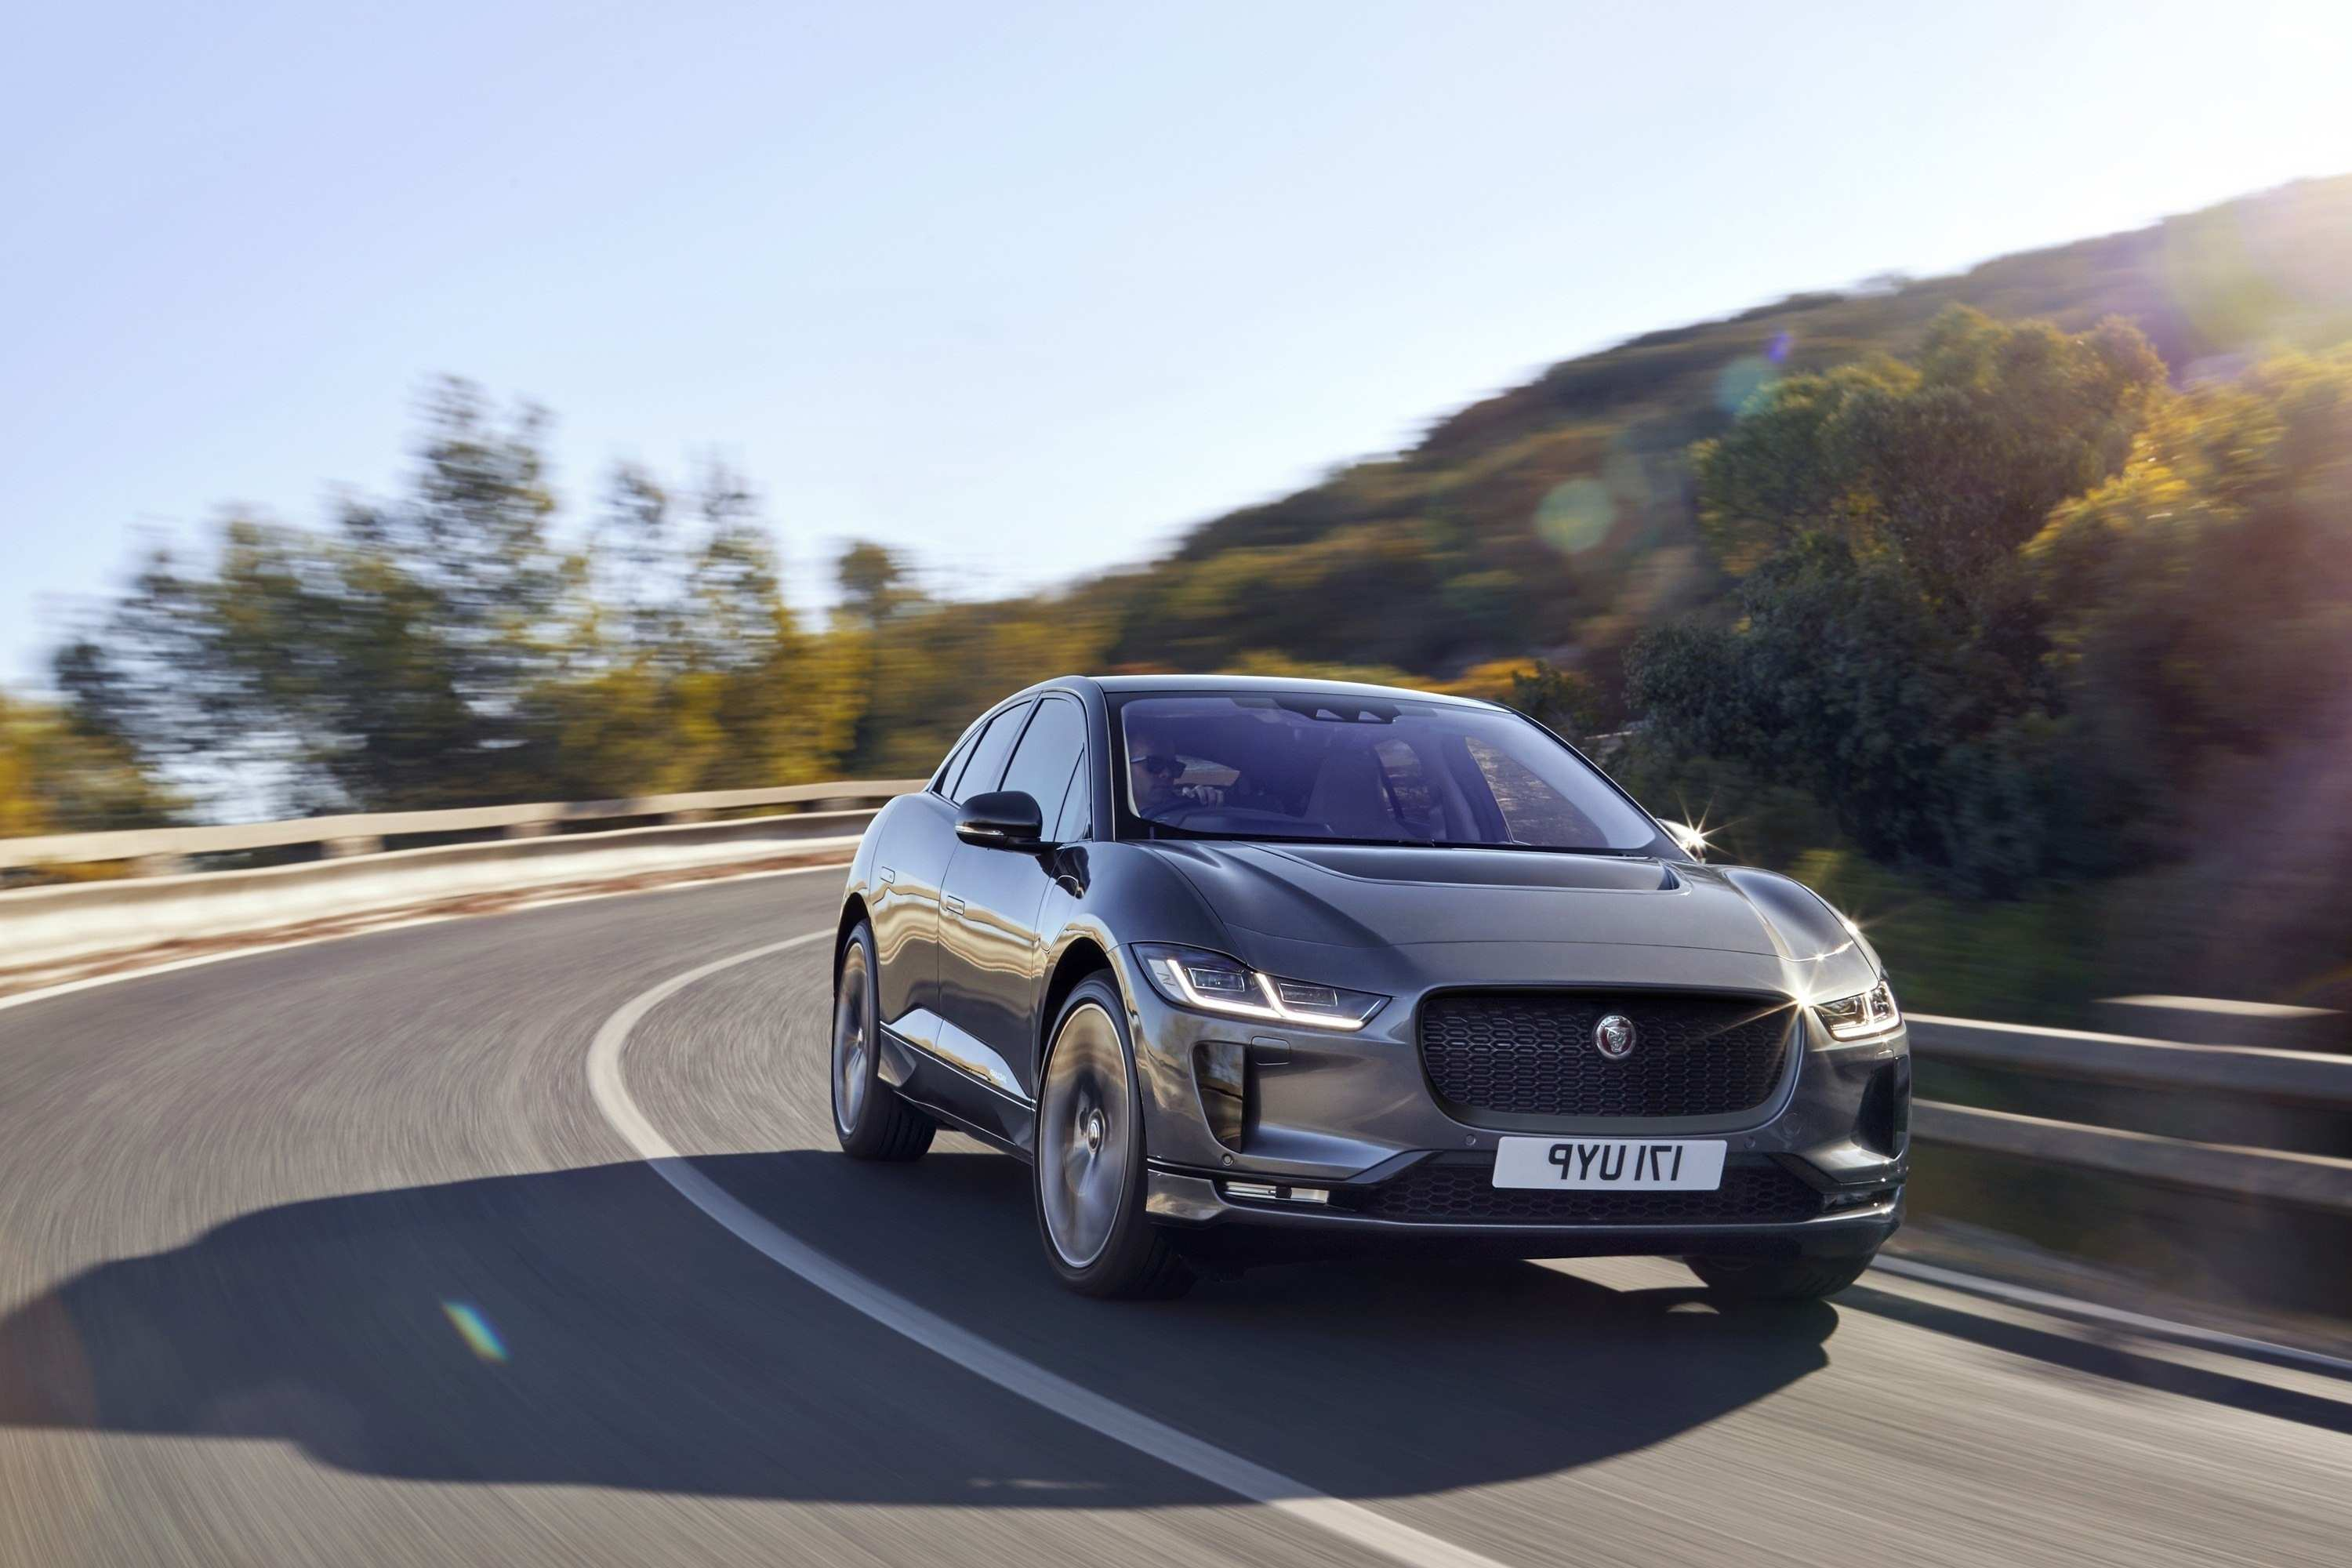 61 A 2019 Jaguar Xq Crossover Specs And Review